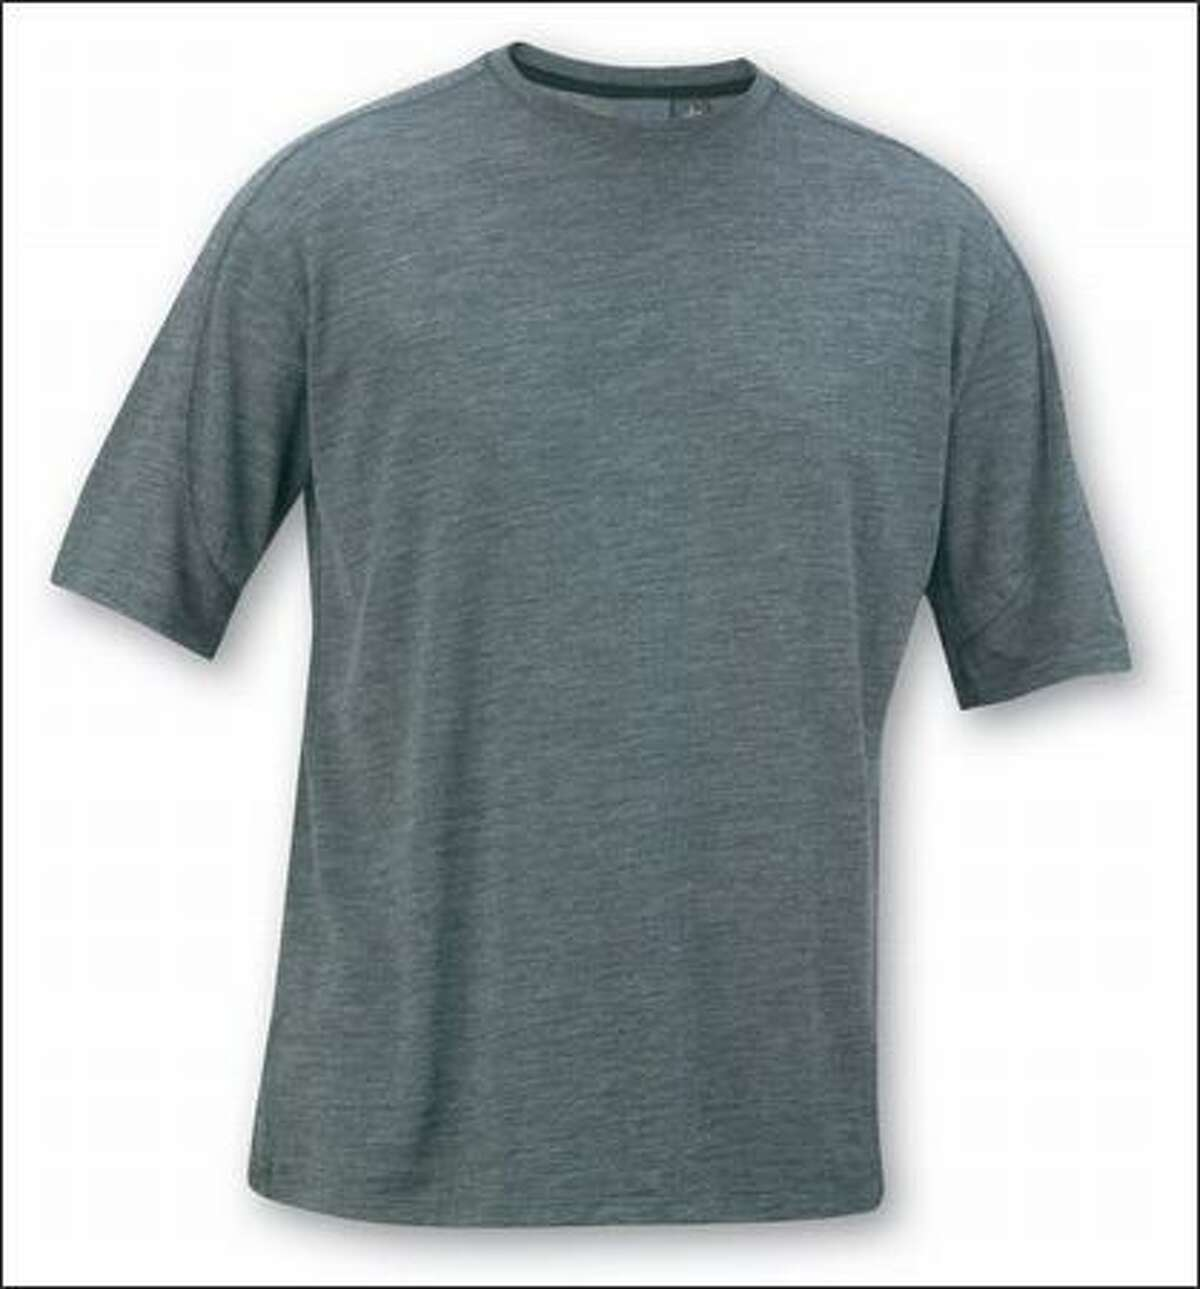 Ibex Qu T-shirt breathes well, insulates, wicks sweat and never stinks.